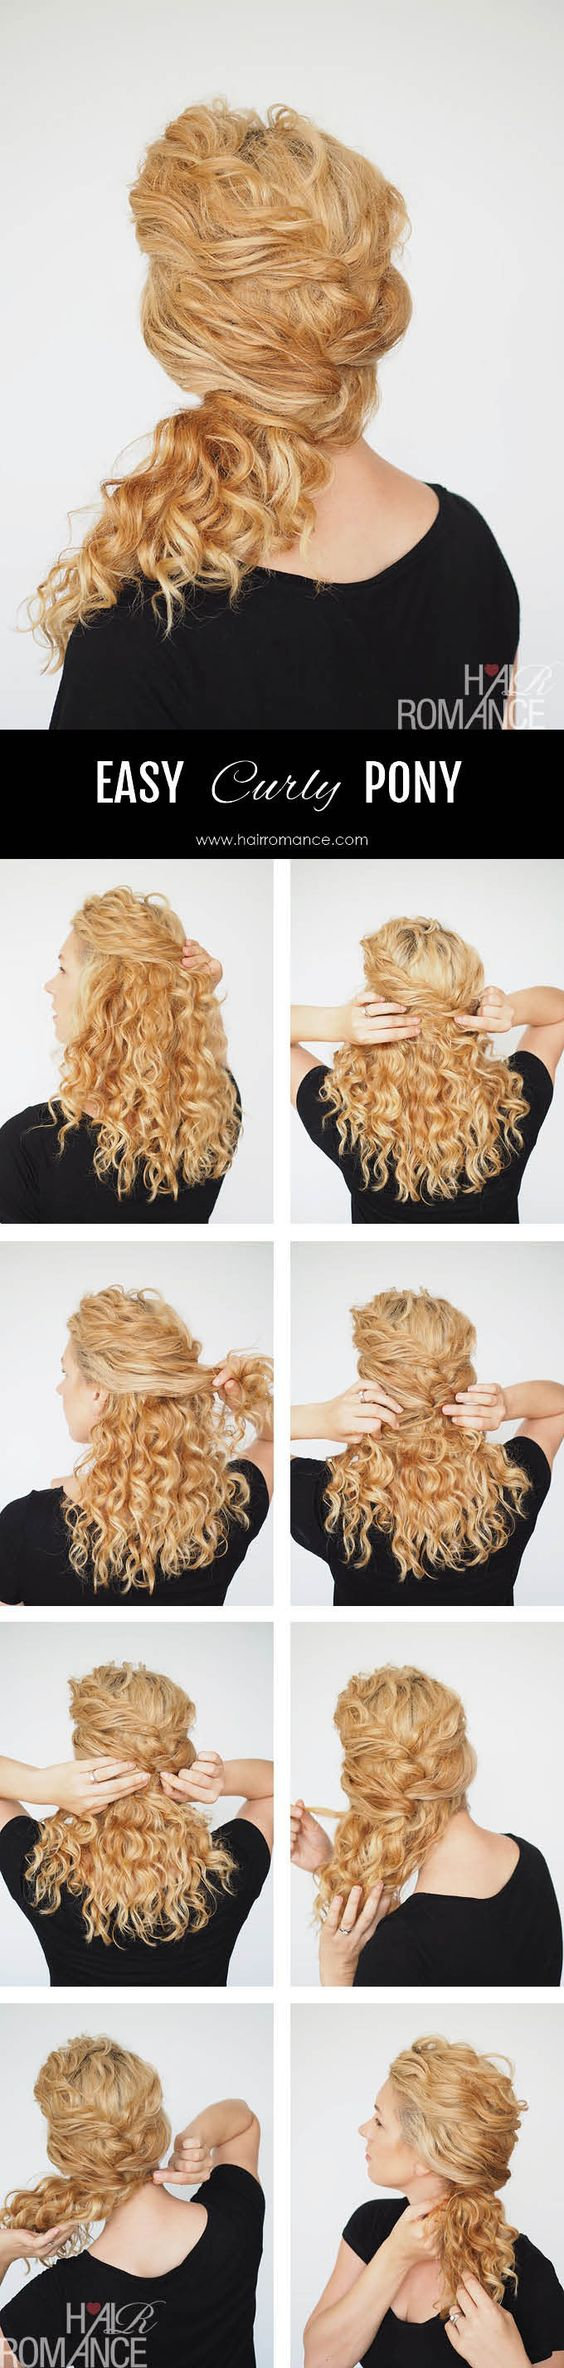 Curly hair tutorial – easy ponytail with a twist (Hair Romance)